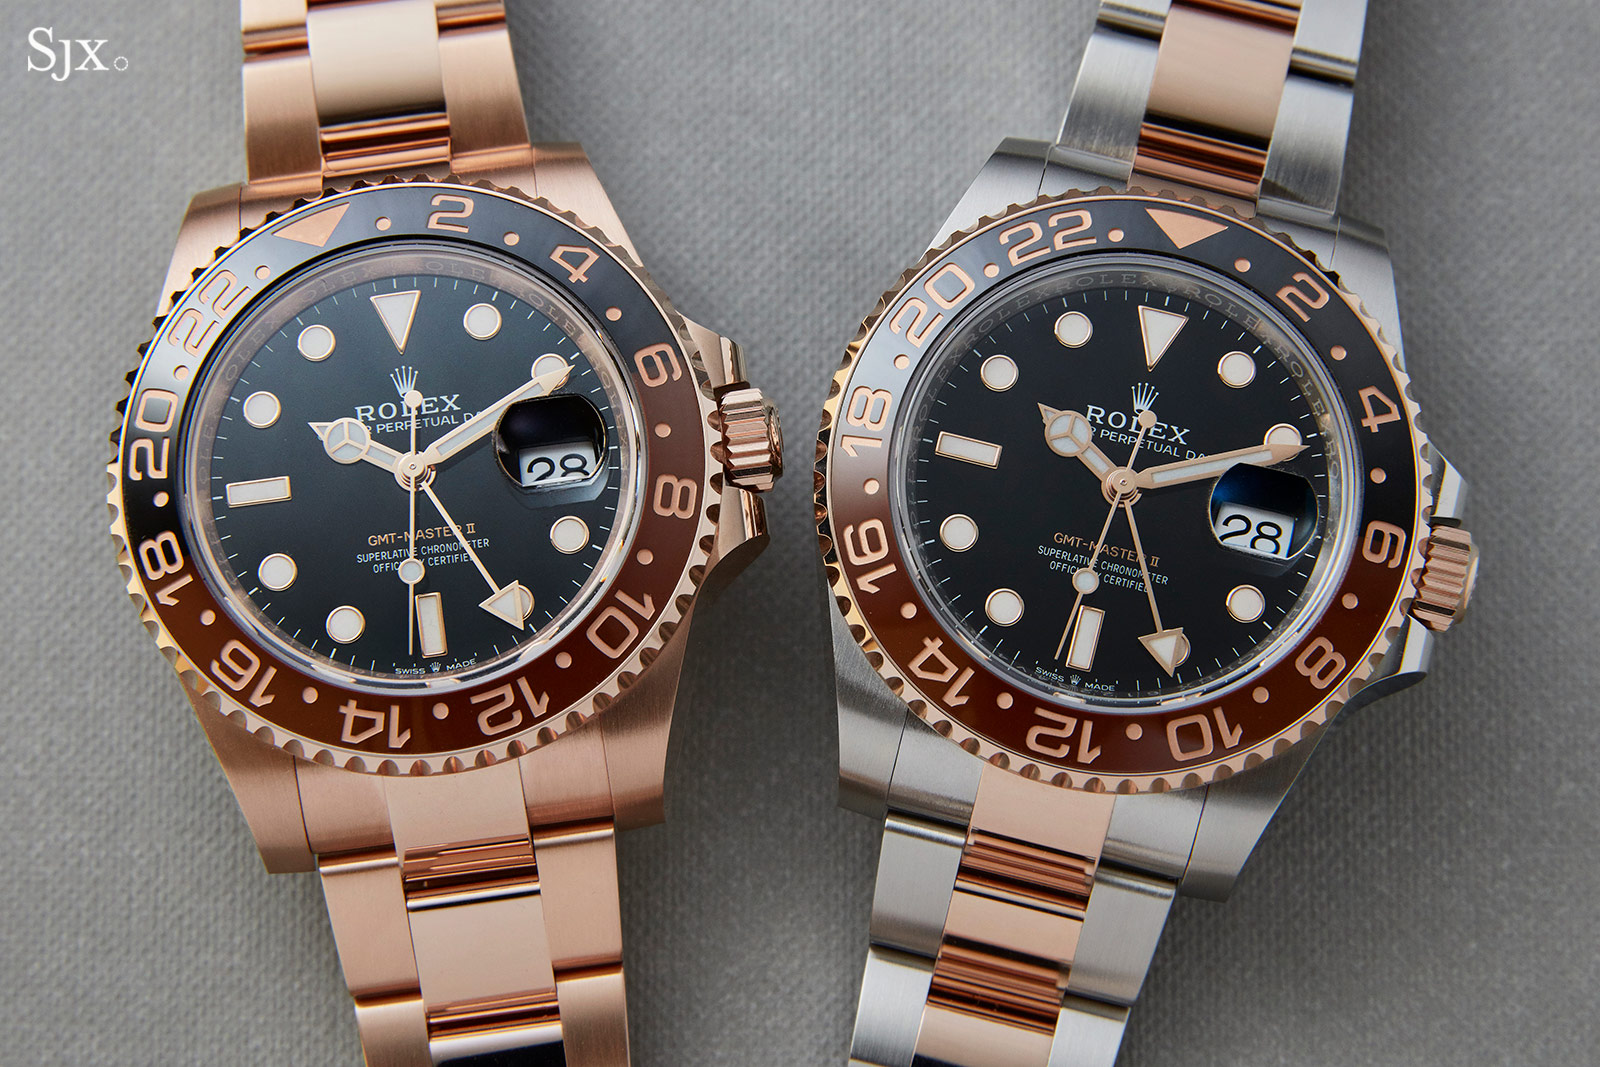 Hands On With The Rolex Gmt Master Ii In Both Everose And Rolesor Sjx Watches